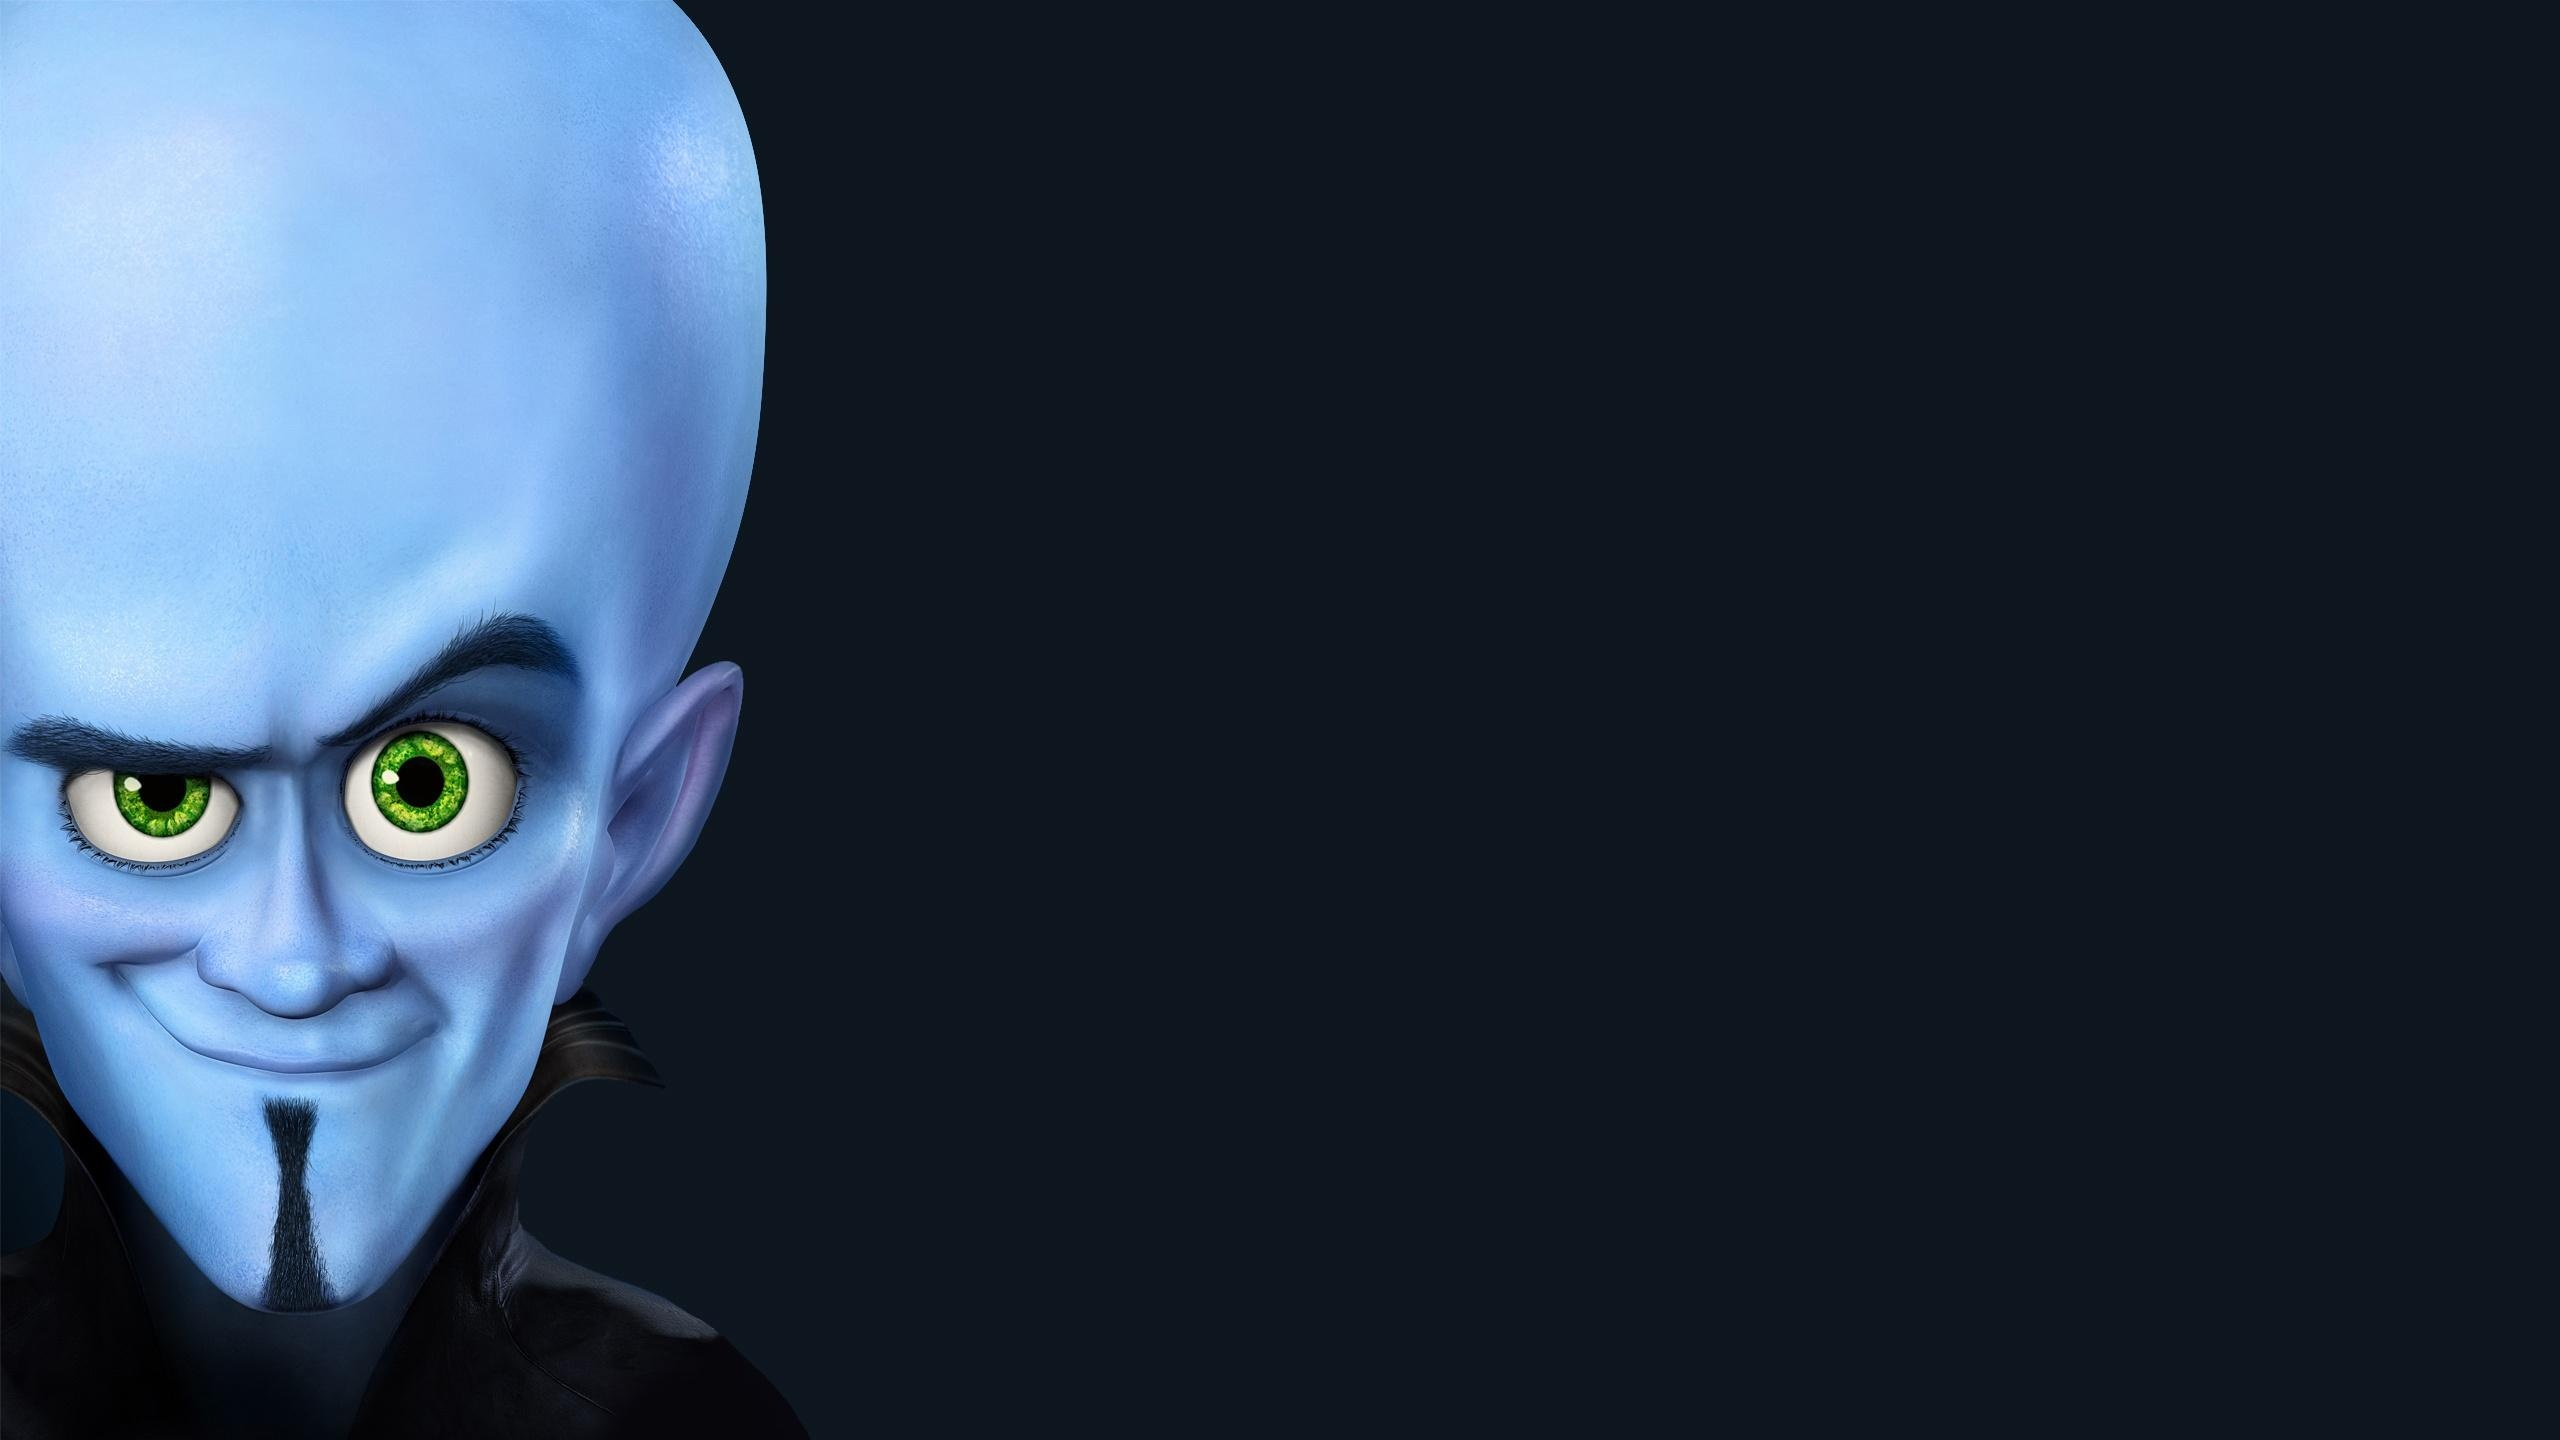 Megamind Cartoon Wallpapers 2560x1440 213279